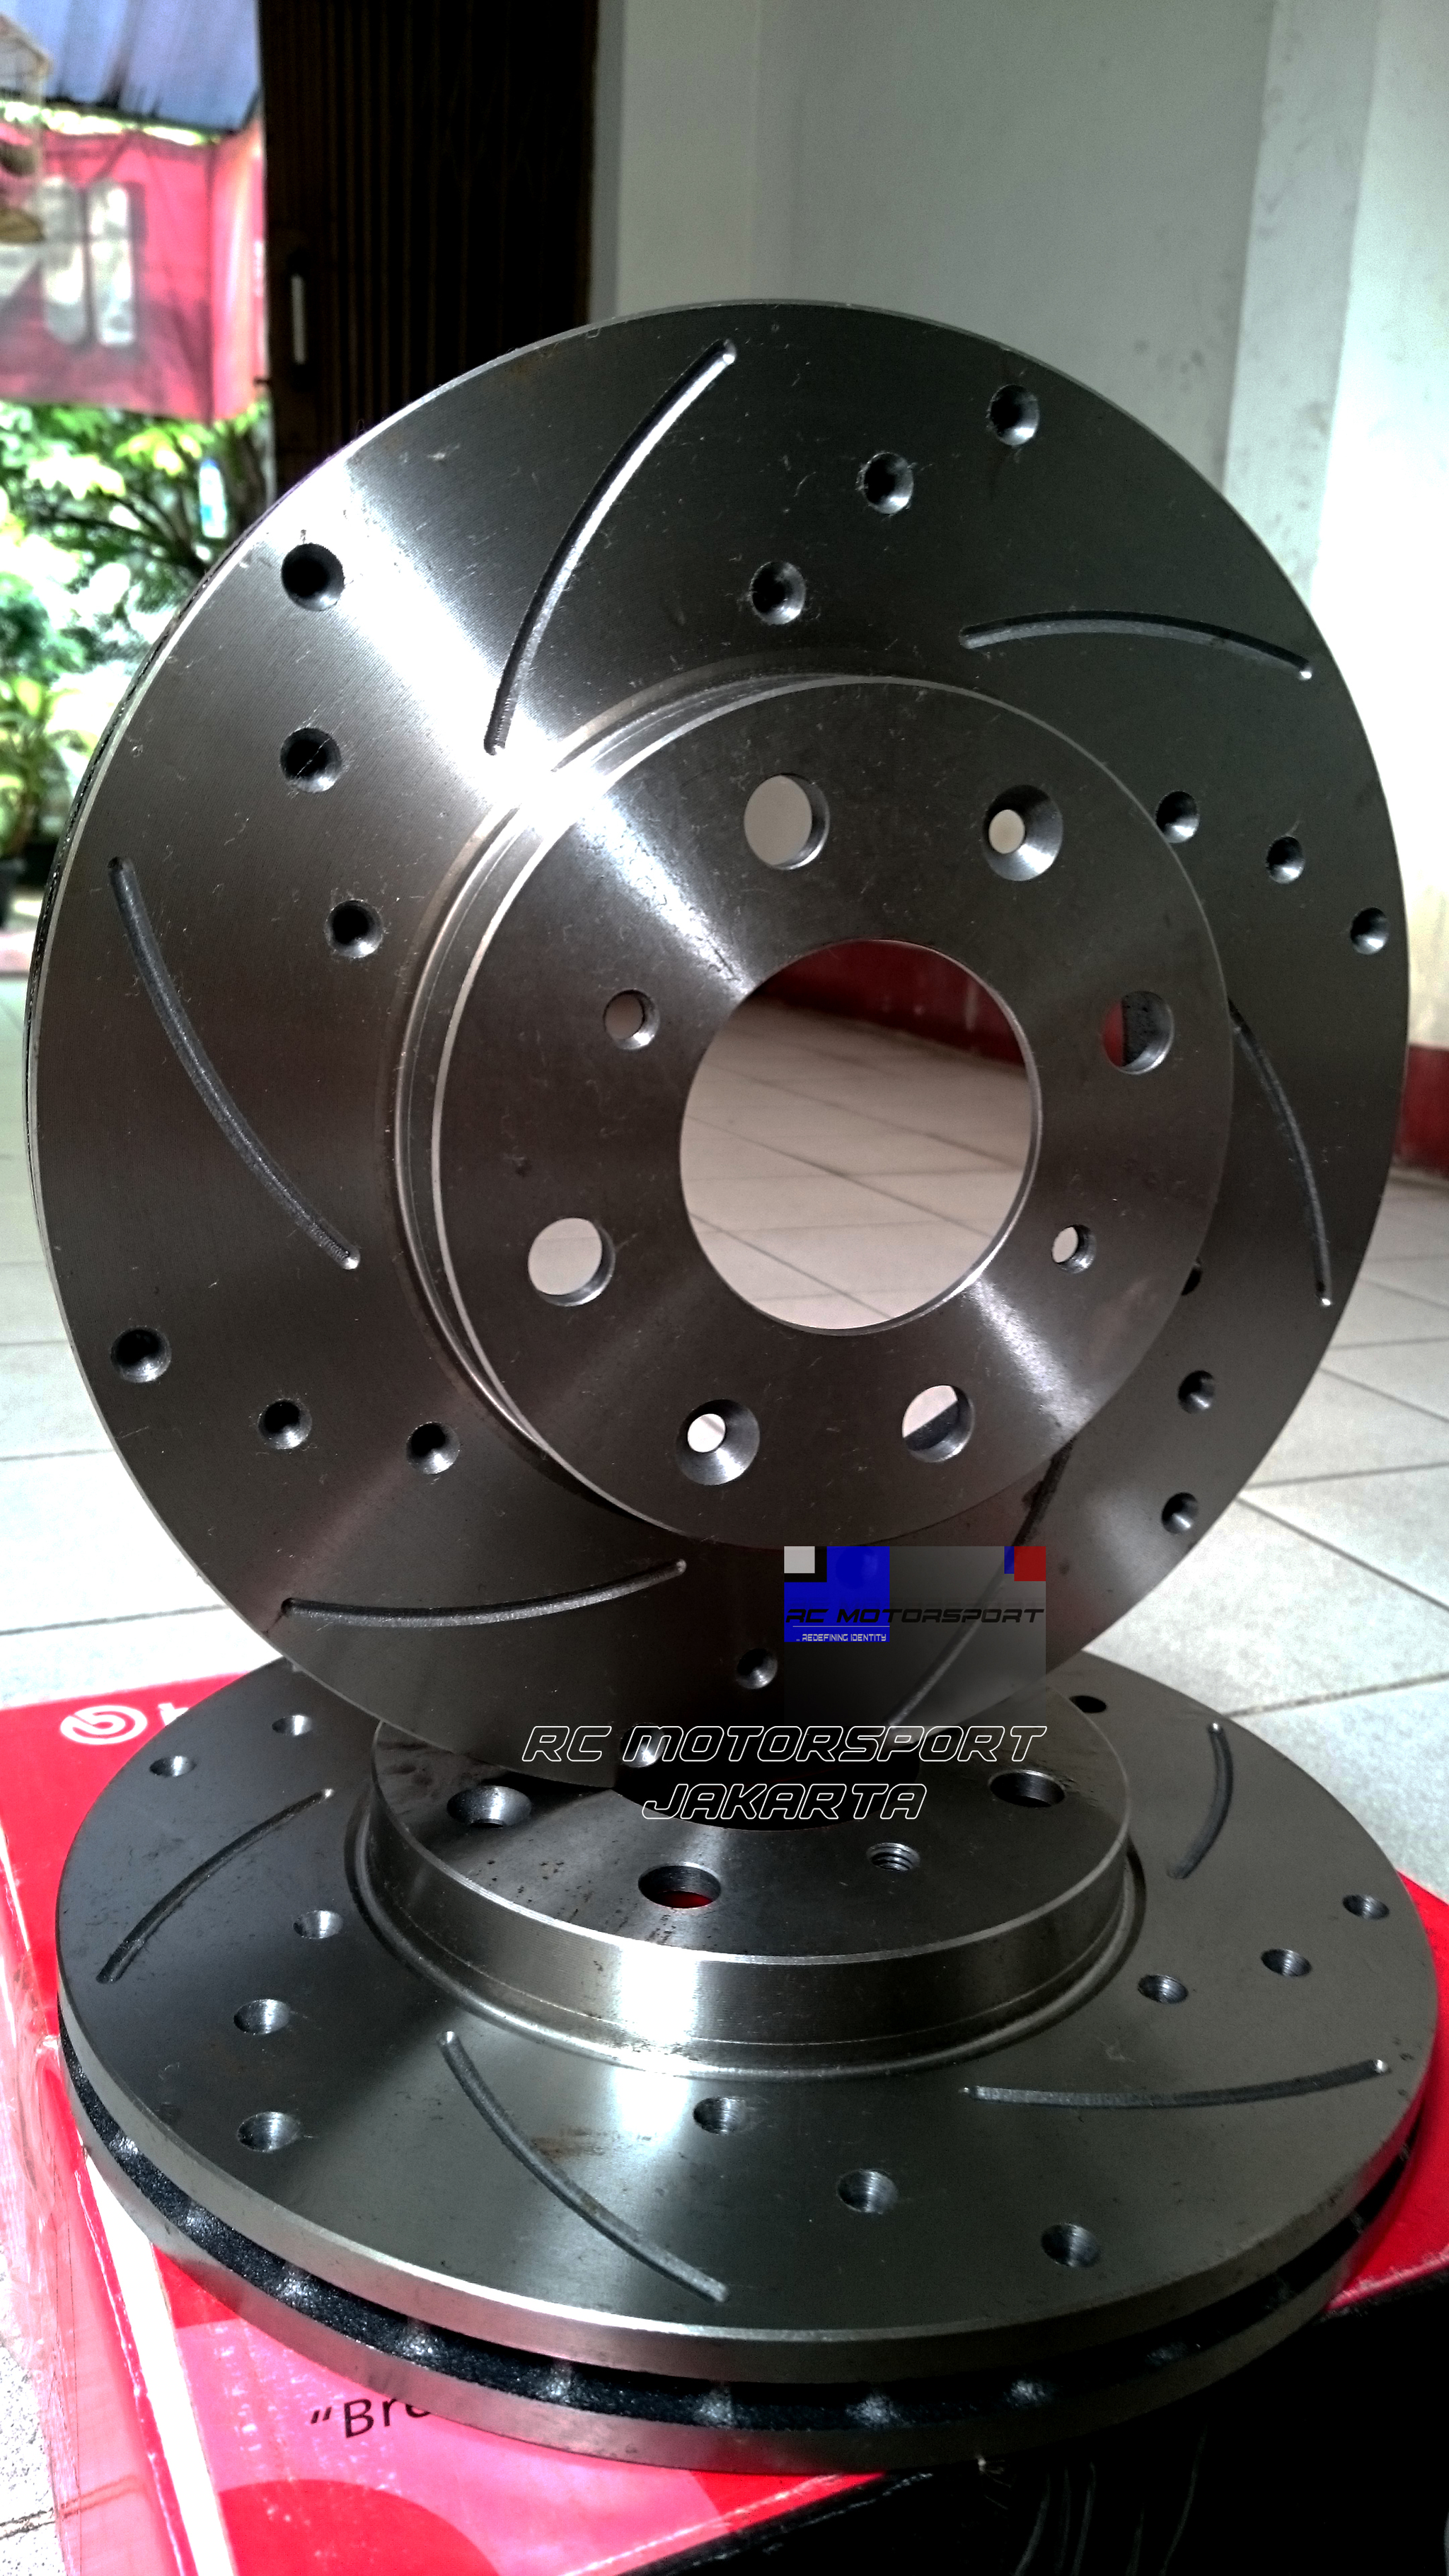 Brembo Performance Disc Brake -Honda Jazz,freed,Mobilio,City,Ferio,VTi